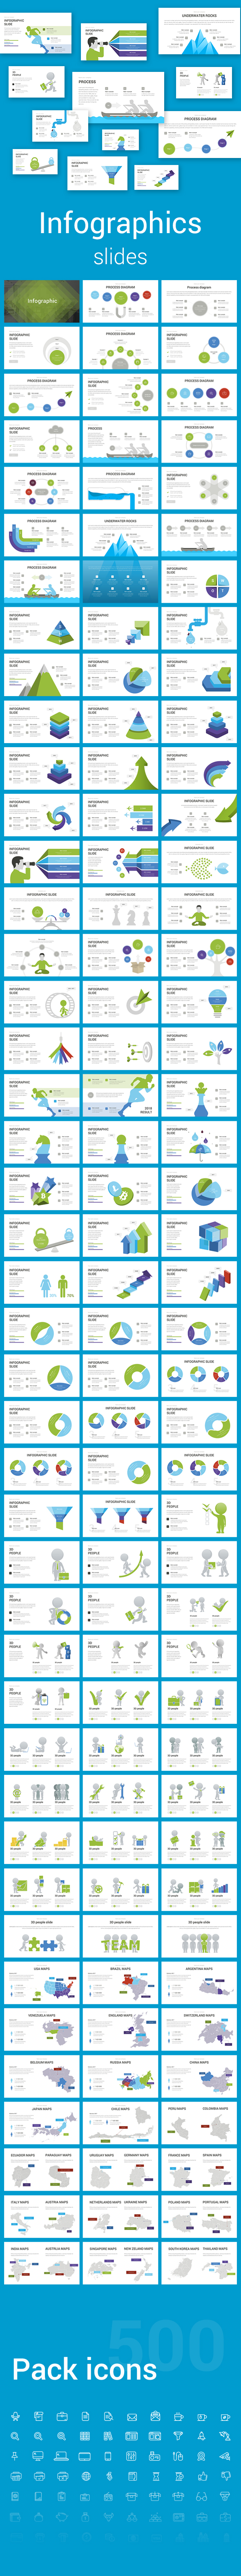 Infographic Keynote Slides - Abstract Keynote Templates